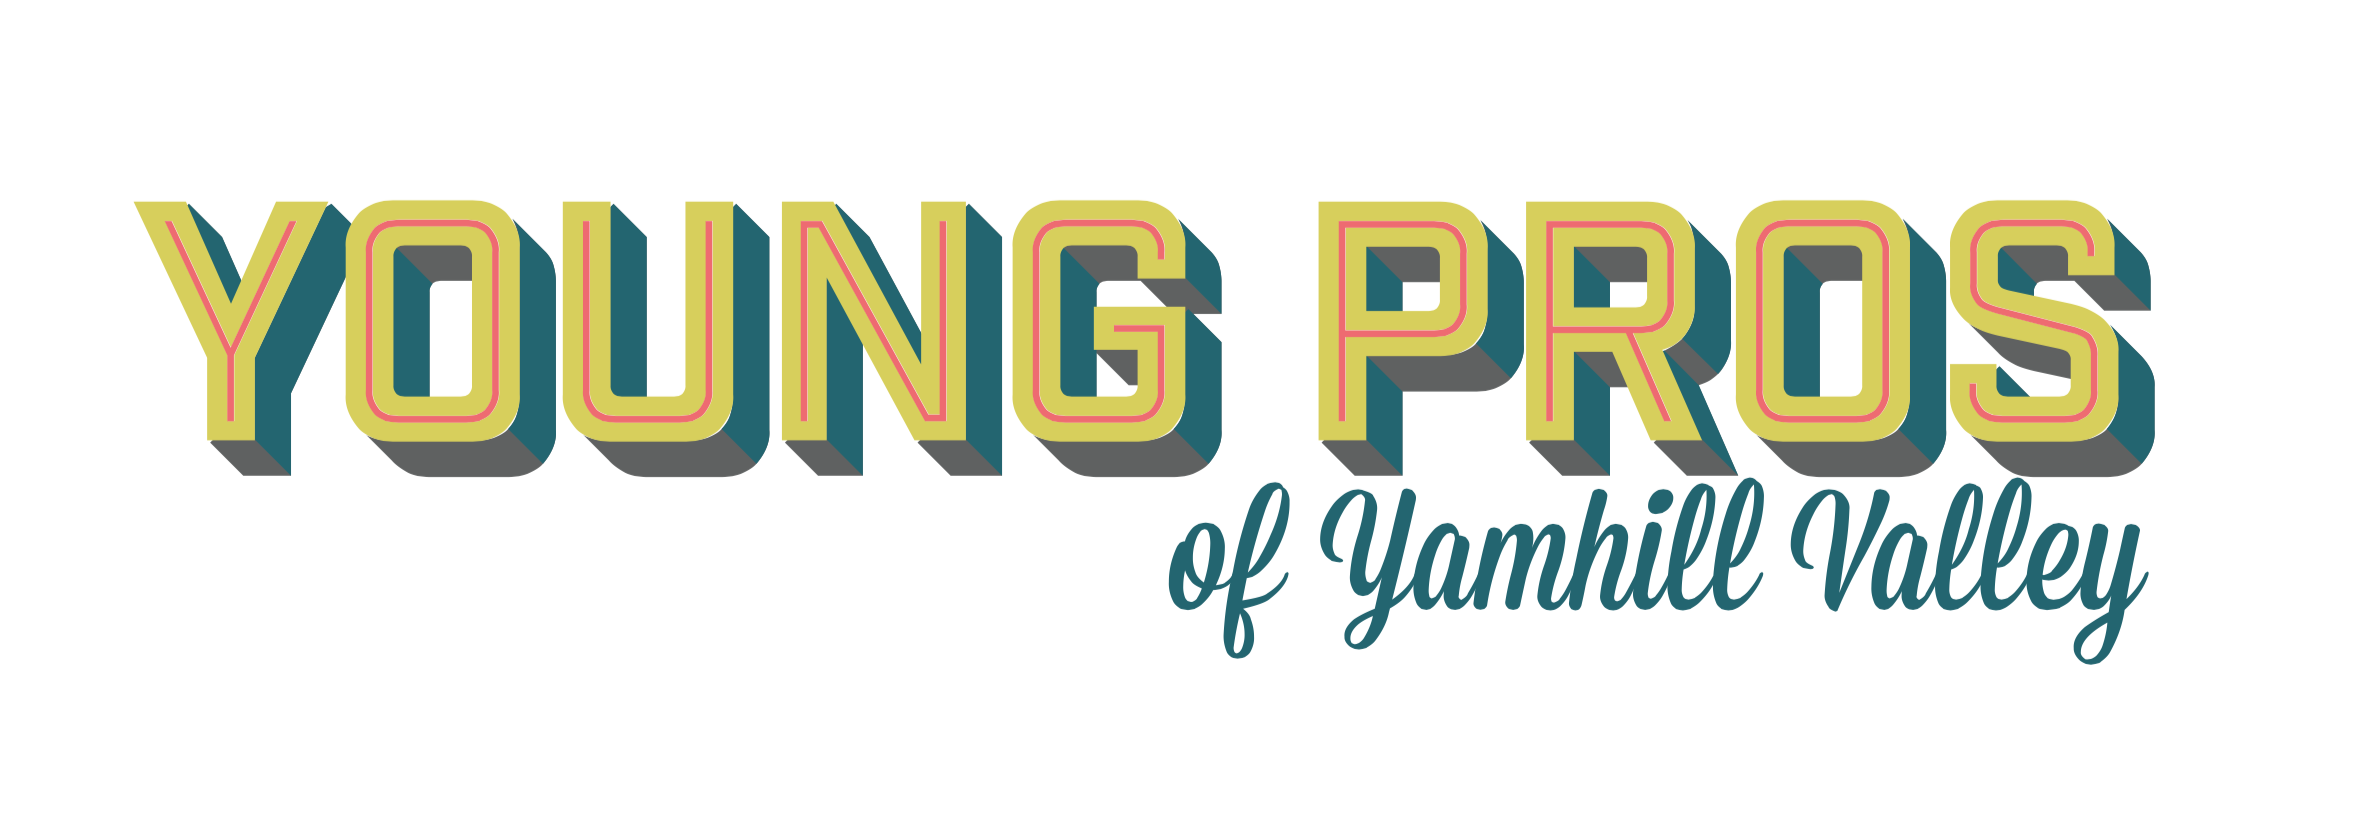 Young Professionals of Yamhill Valley